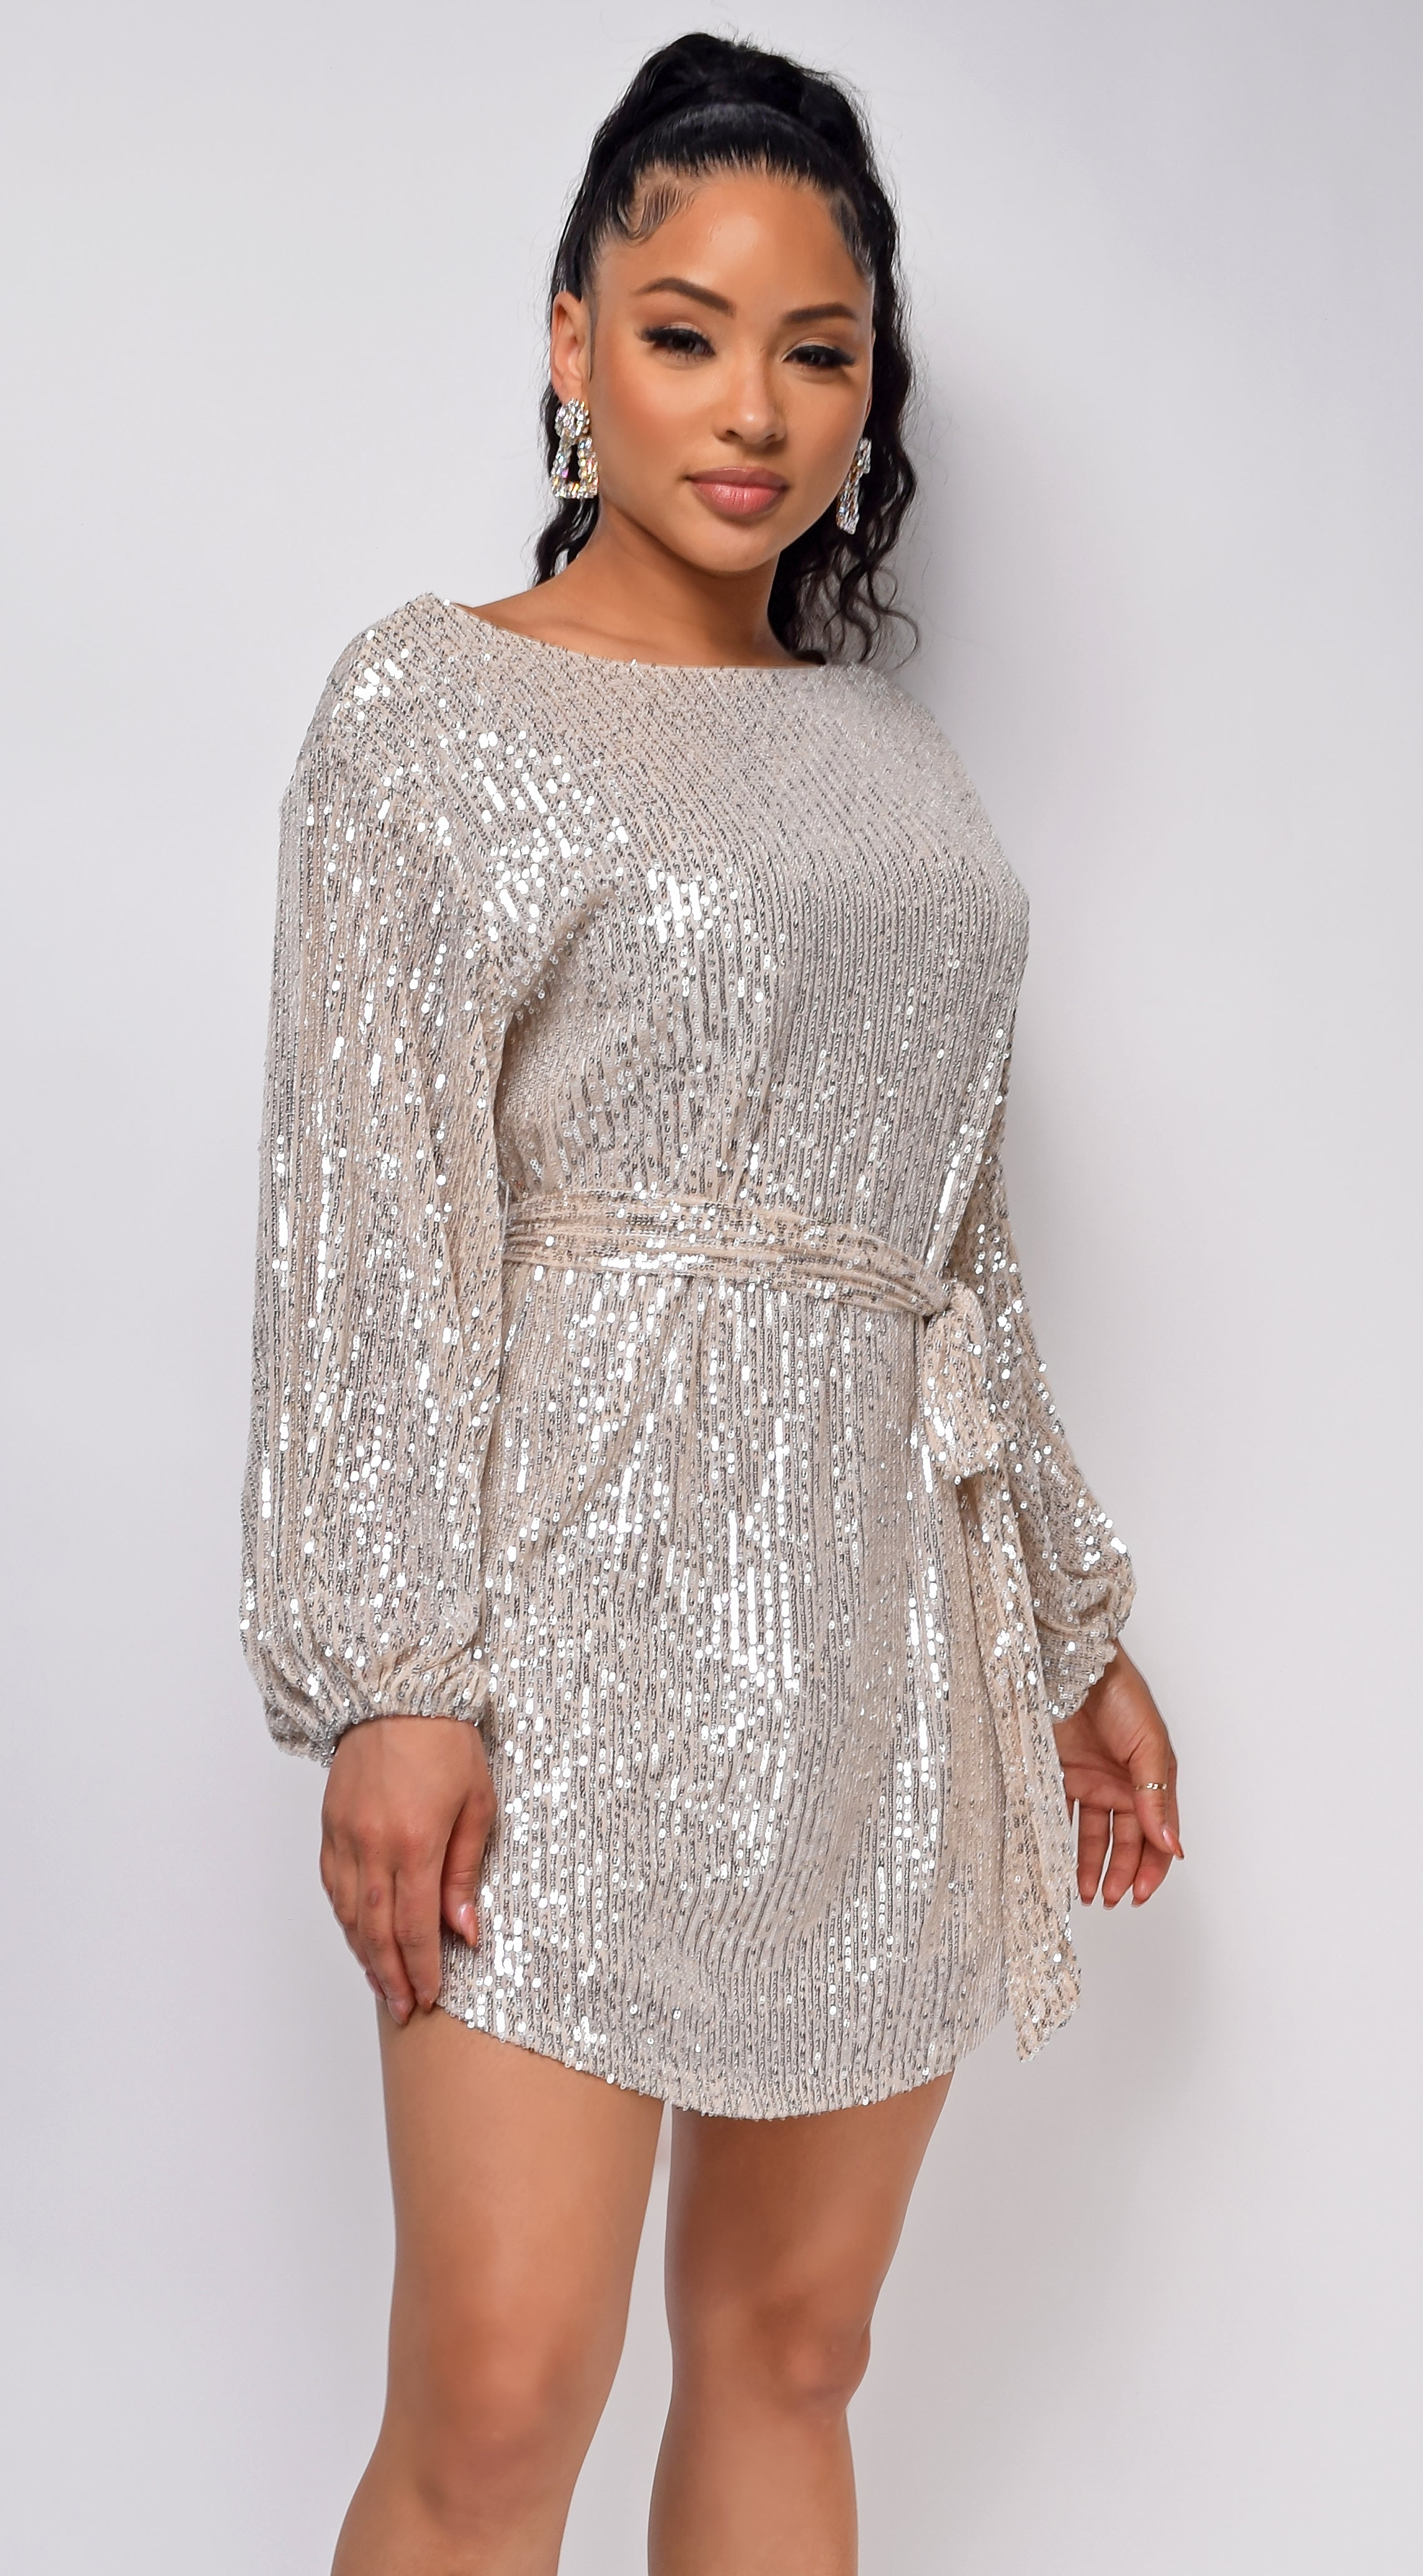 Tara Champagne Silver Belted Sequin Dress